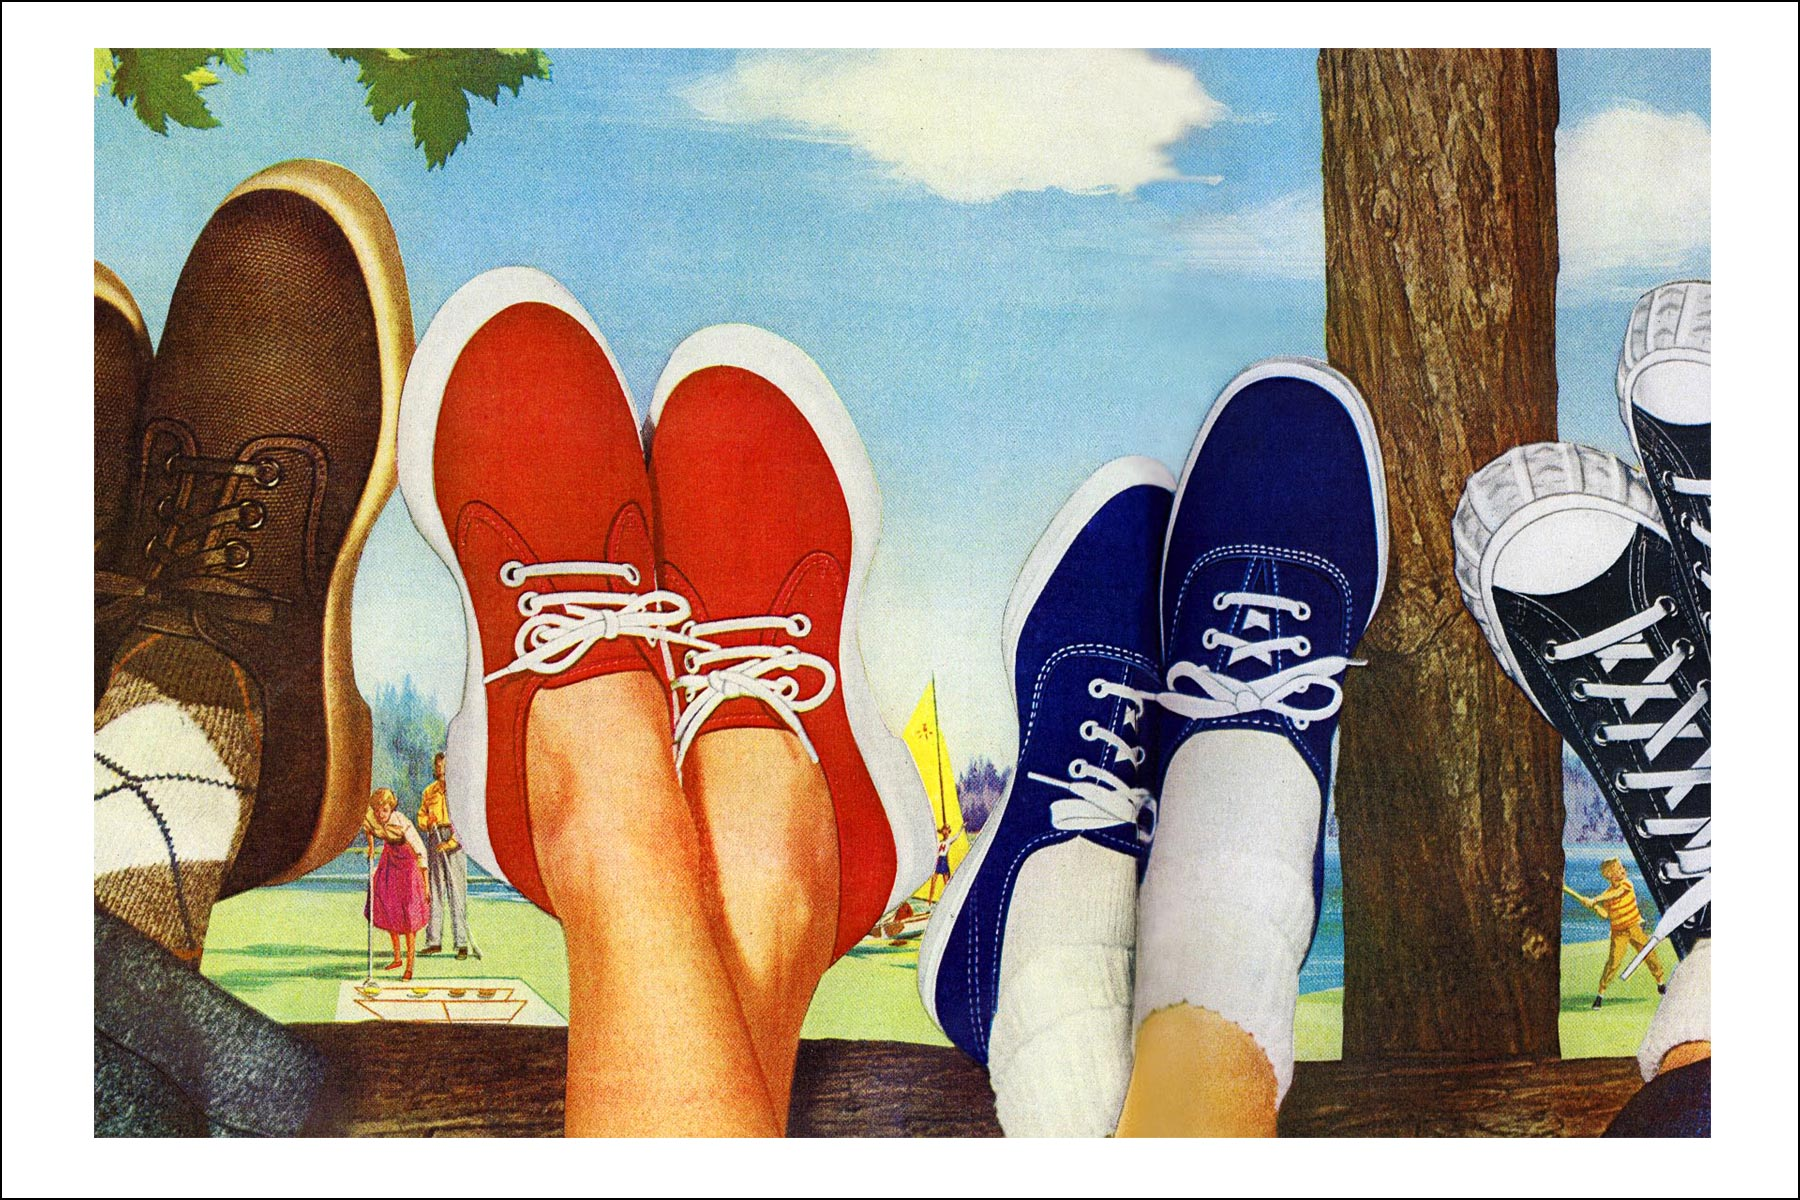 Vintage PF Flyers advertisements from the 50s, Ponyboy magazine NY.